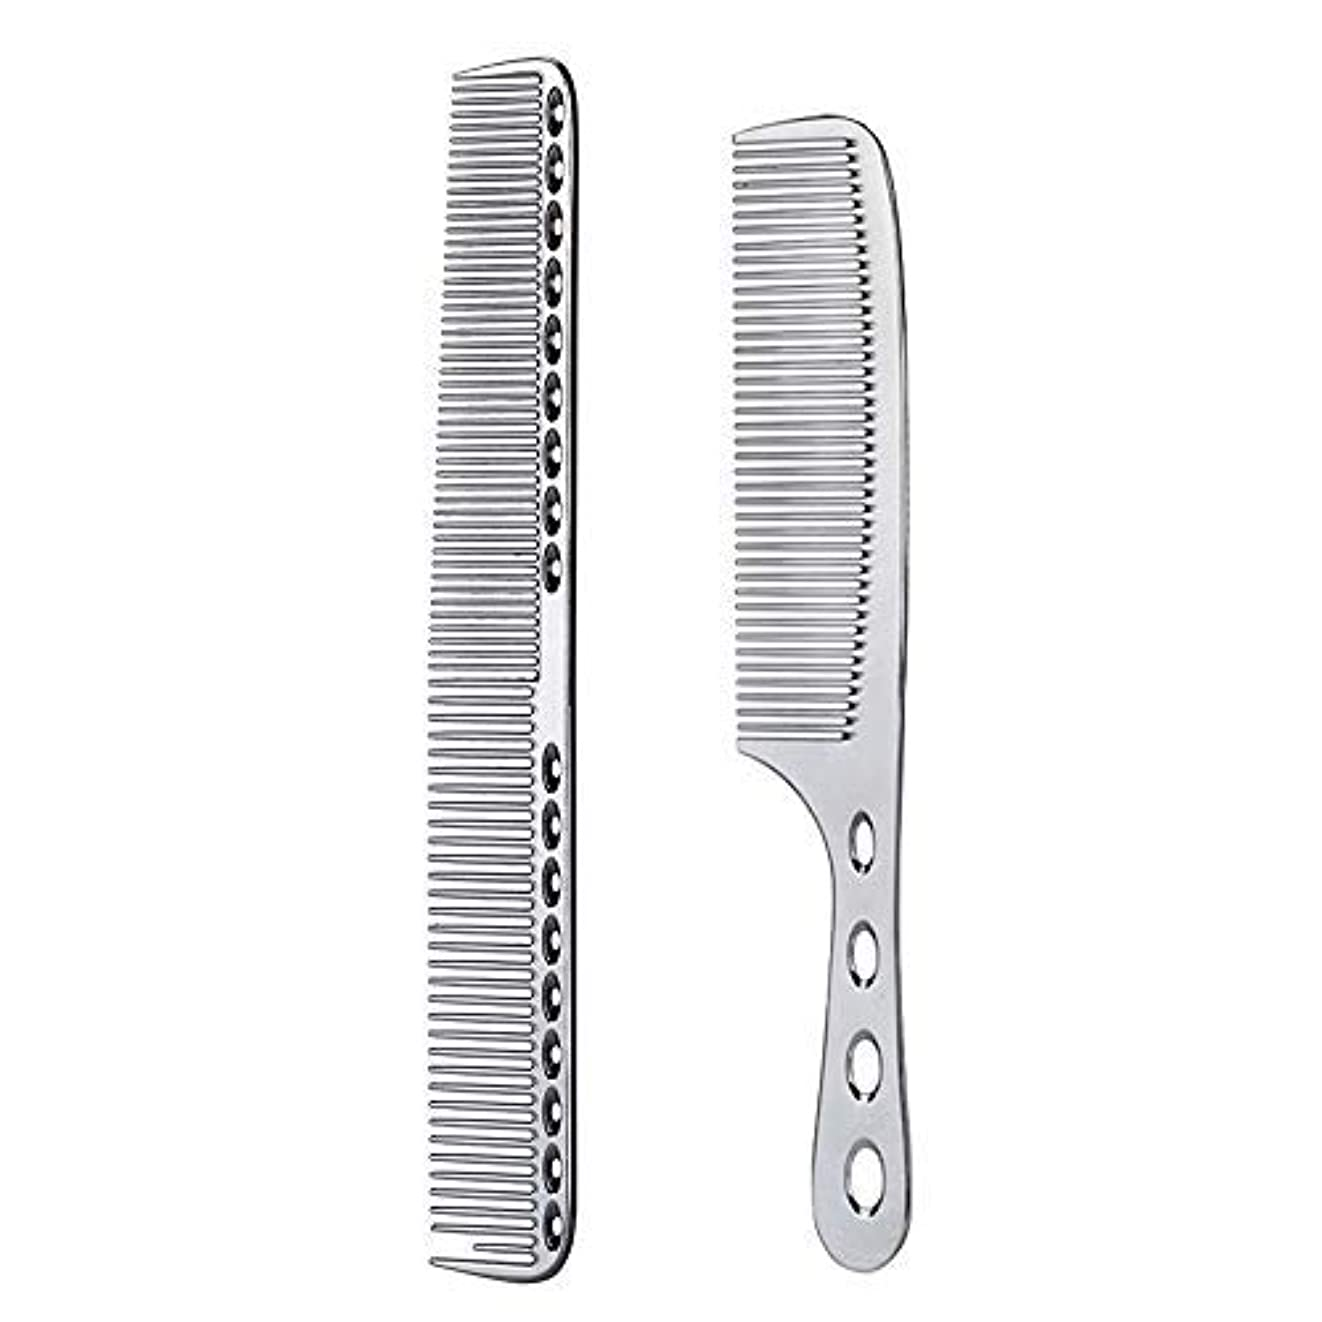 小間改善ジェーンオースティン2 pcs Stainless Steel Hair Combs Anti Static Styling Comb Hairdressing Barbers Combs (Silver) [並行輸入品]